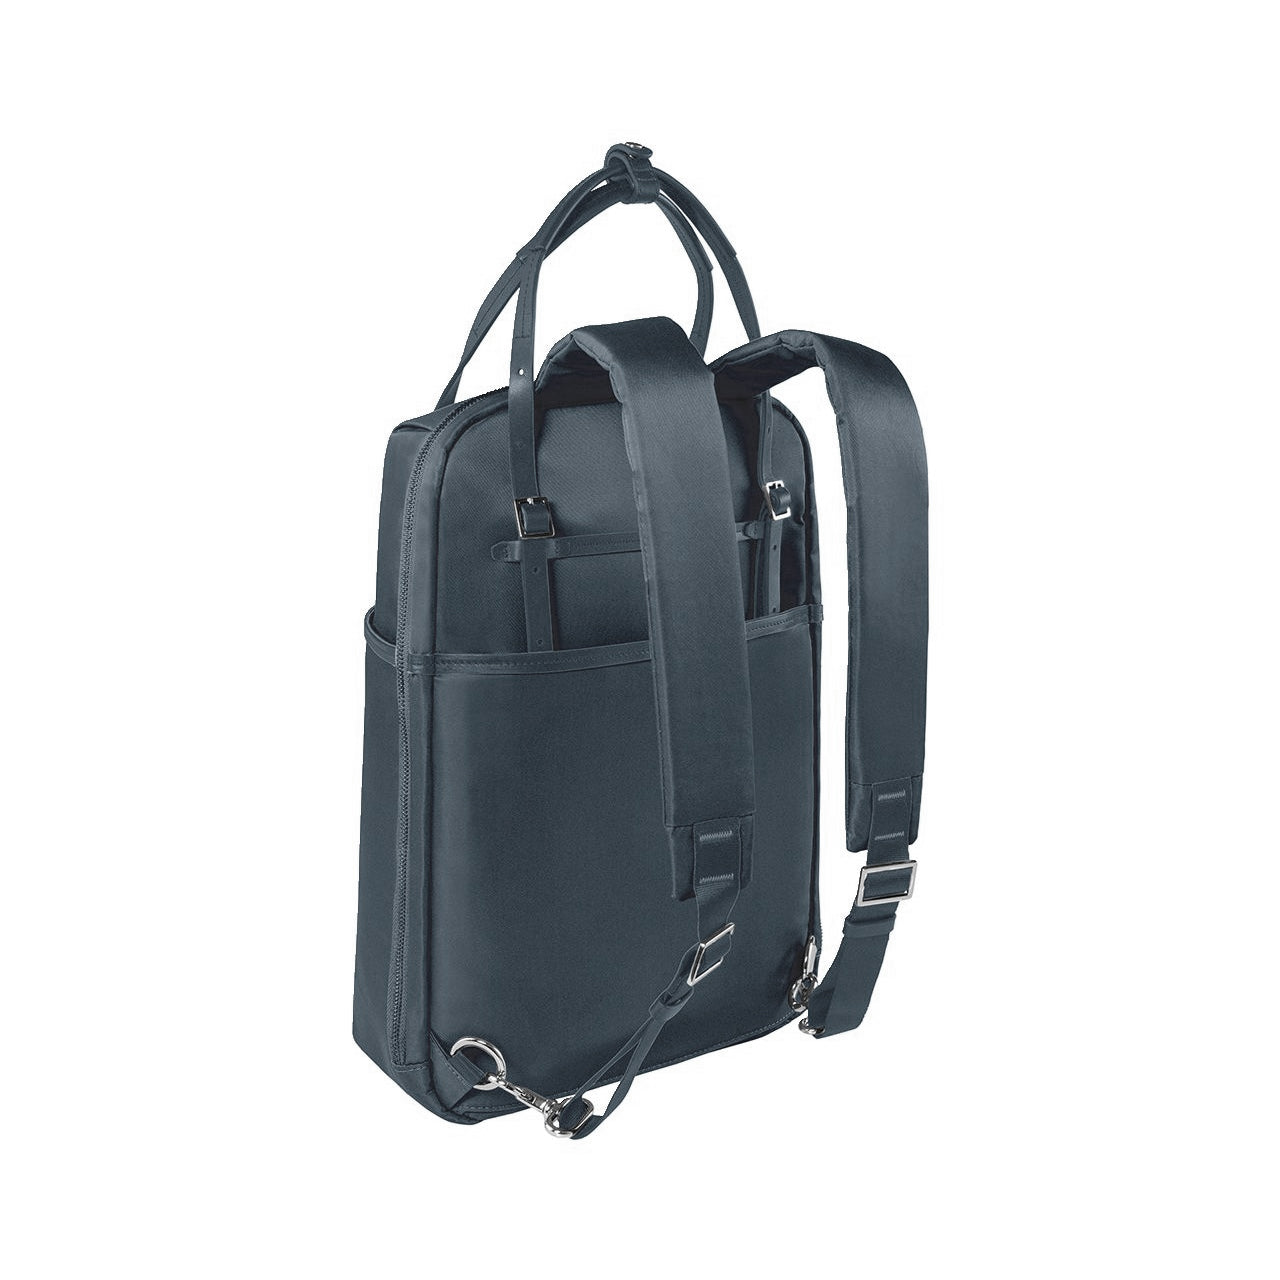 Victorinox Victoria Harmony 2 in 1 Laptop Backpack